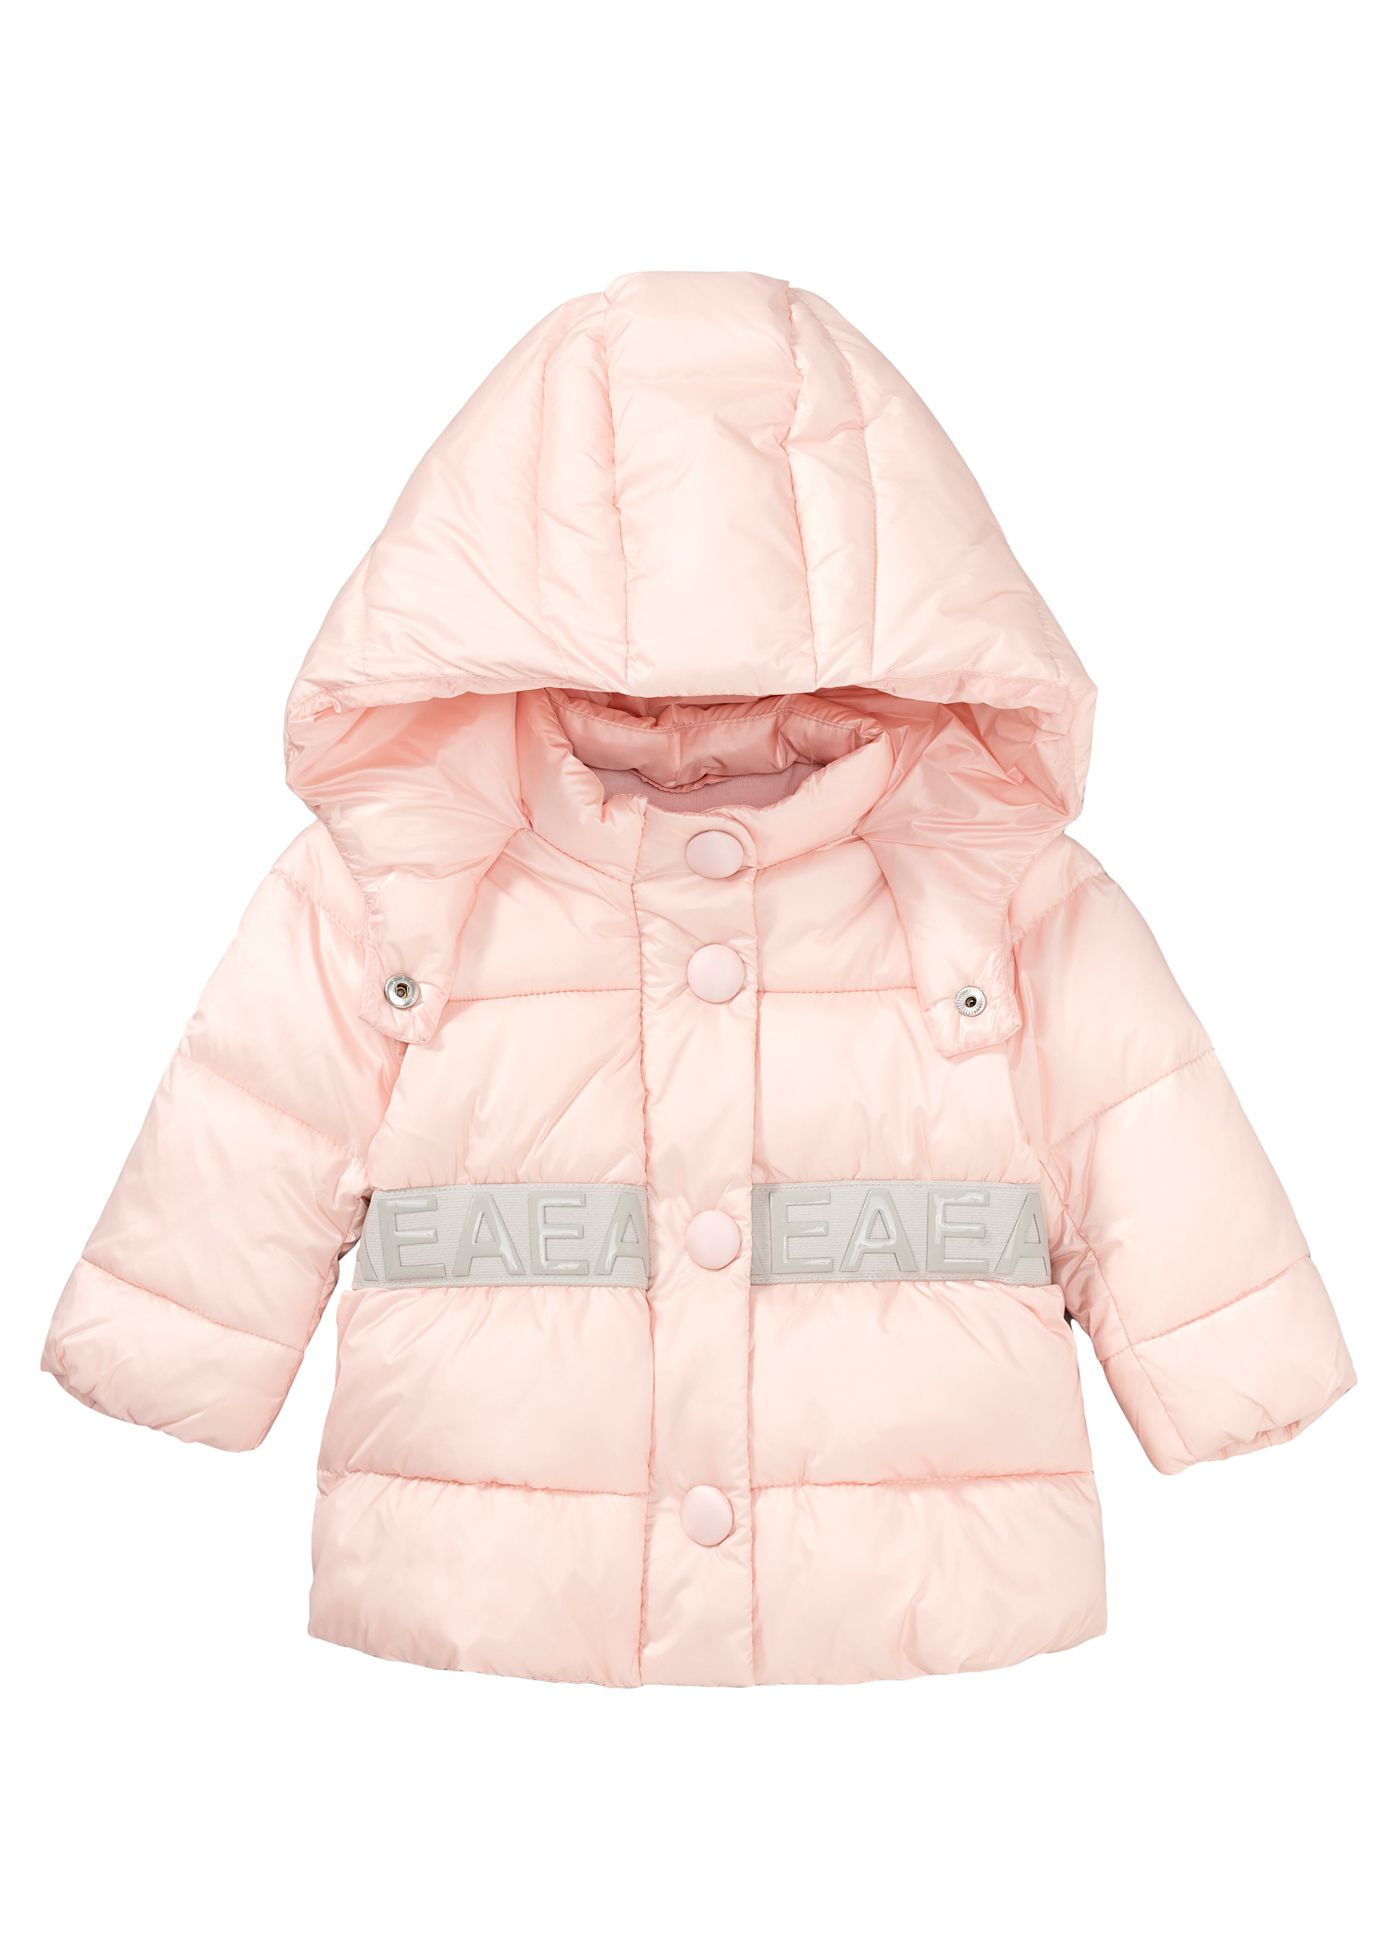 Eco Puffer Coat image number 0